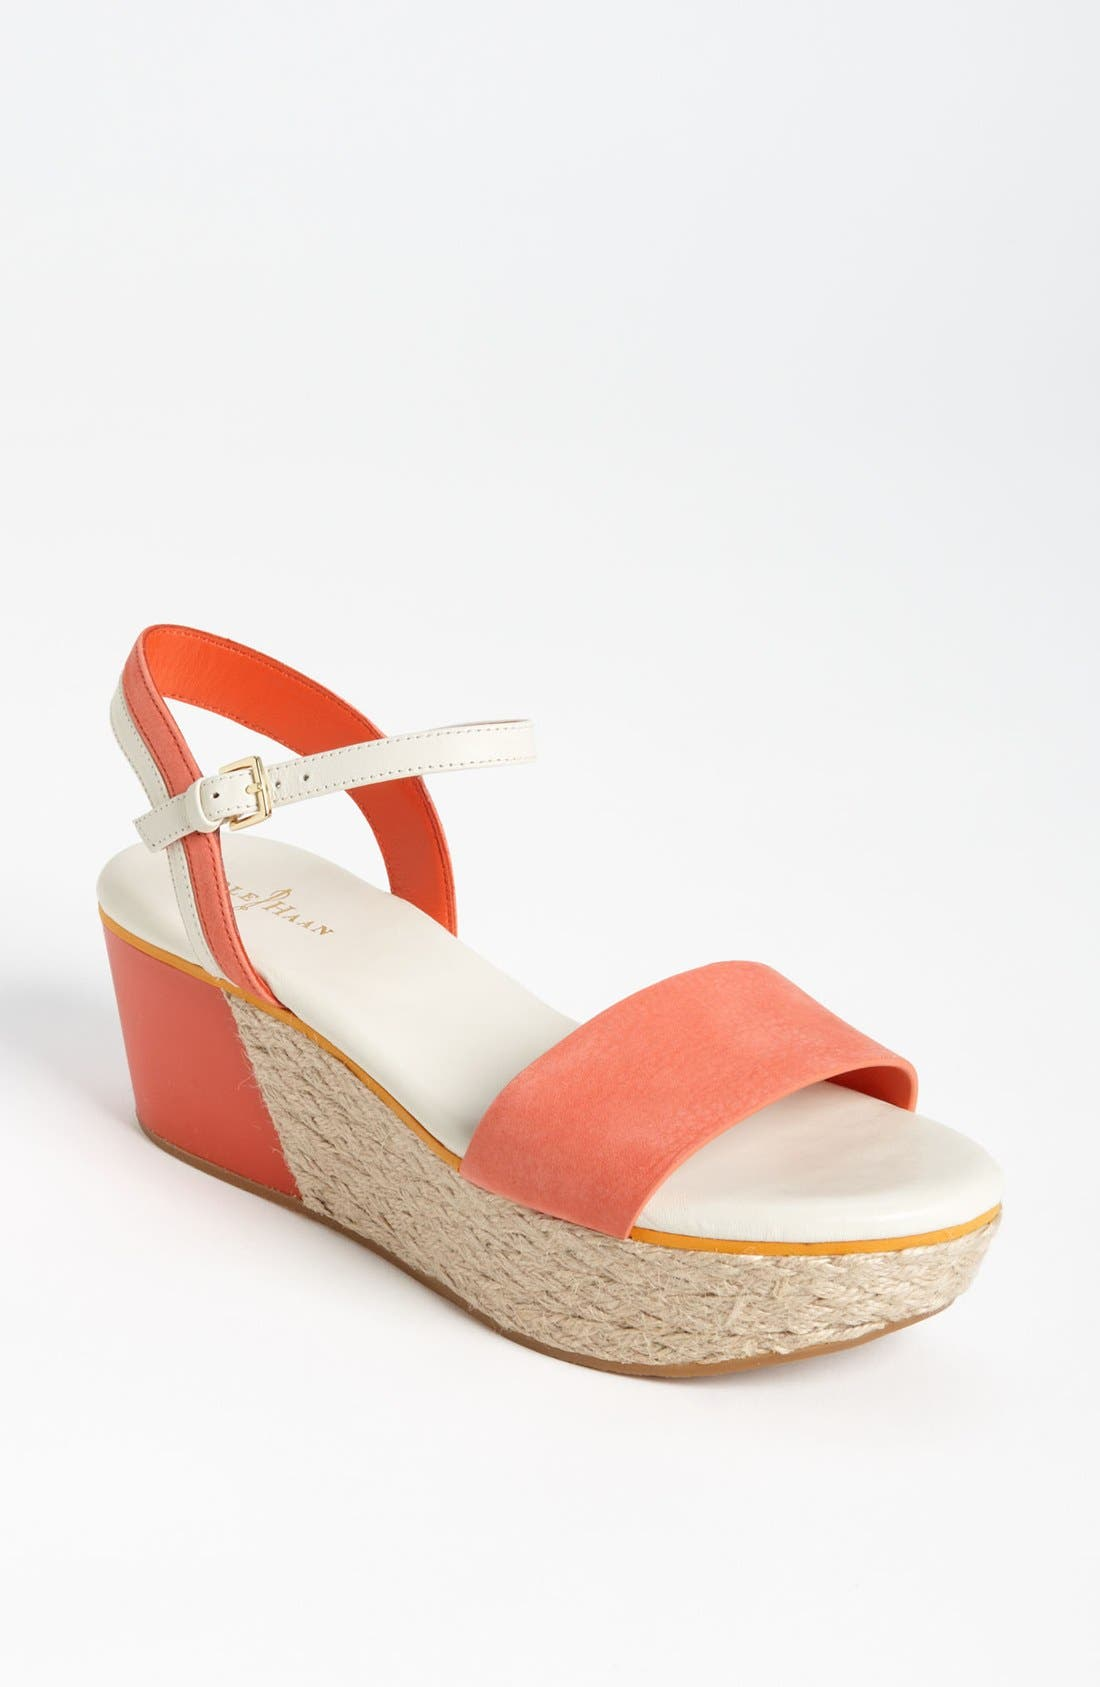 Alternate Image 1 Selected - Cole Haan 'Arden' Wedge Sandal